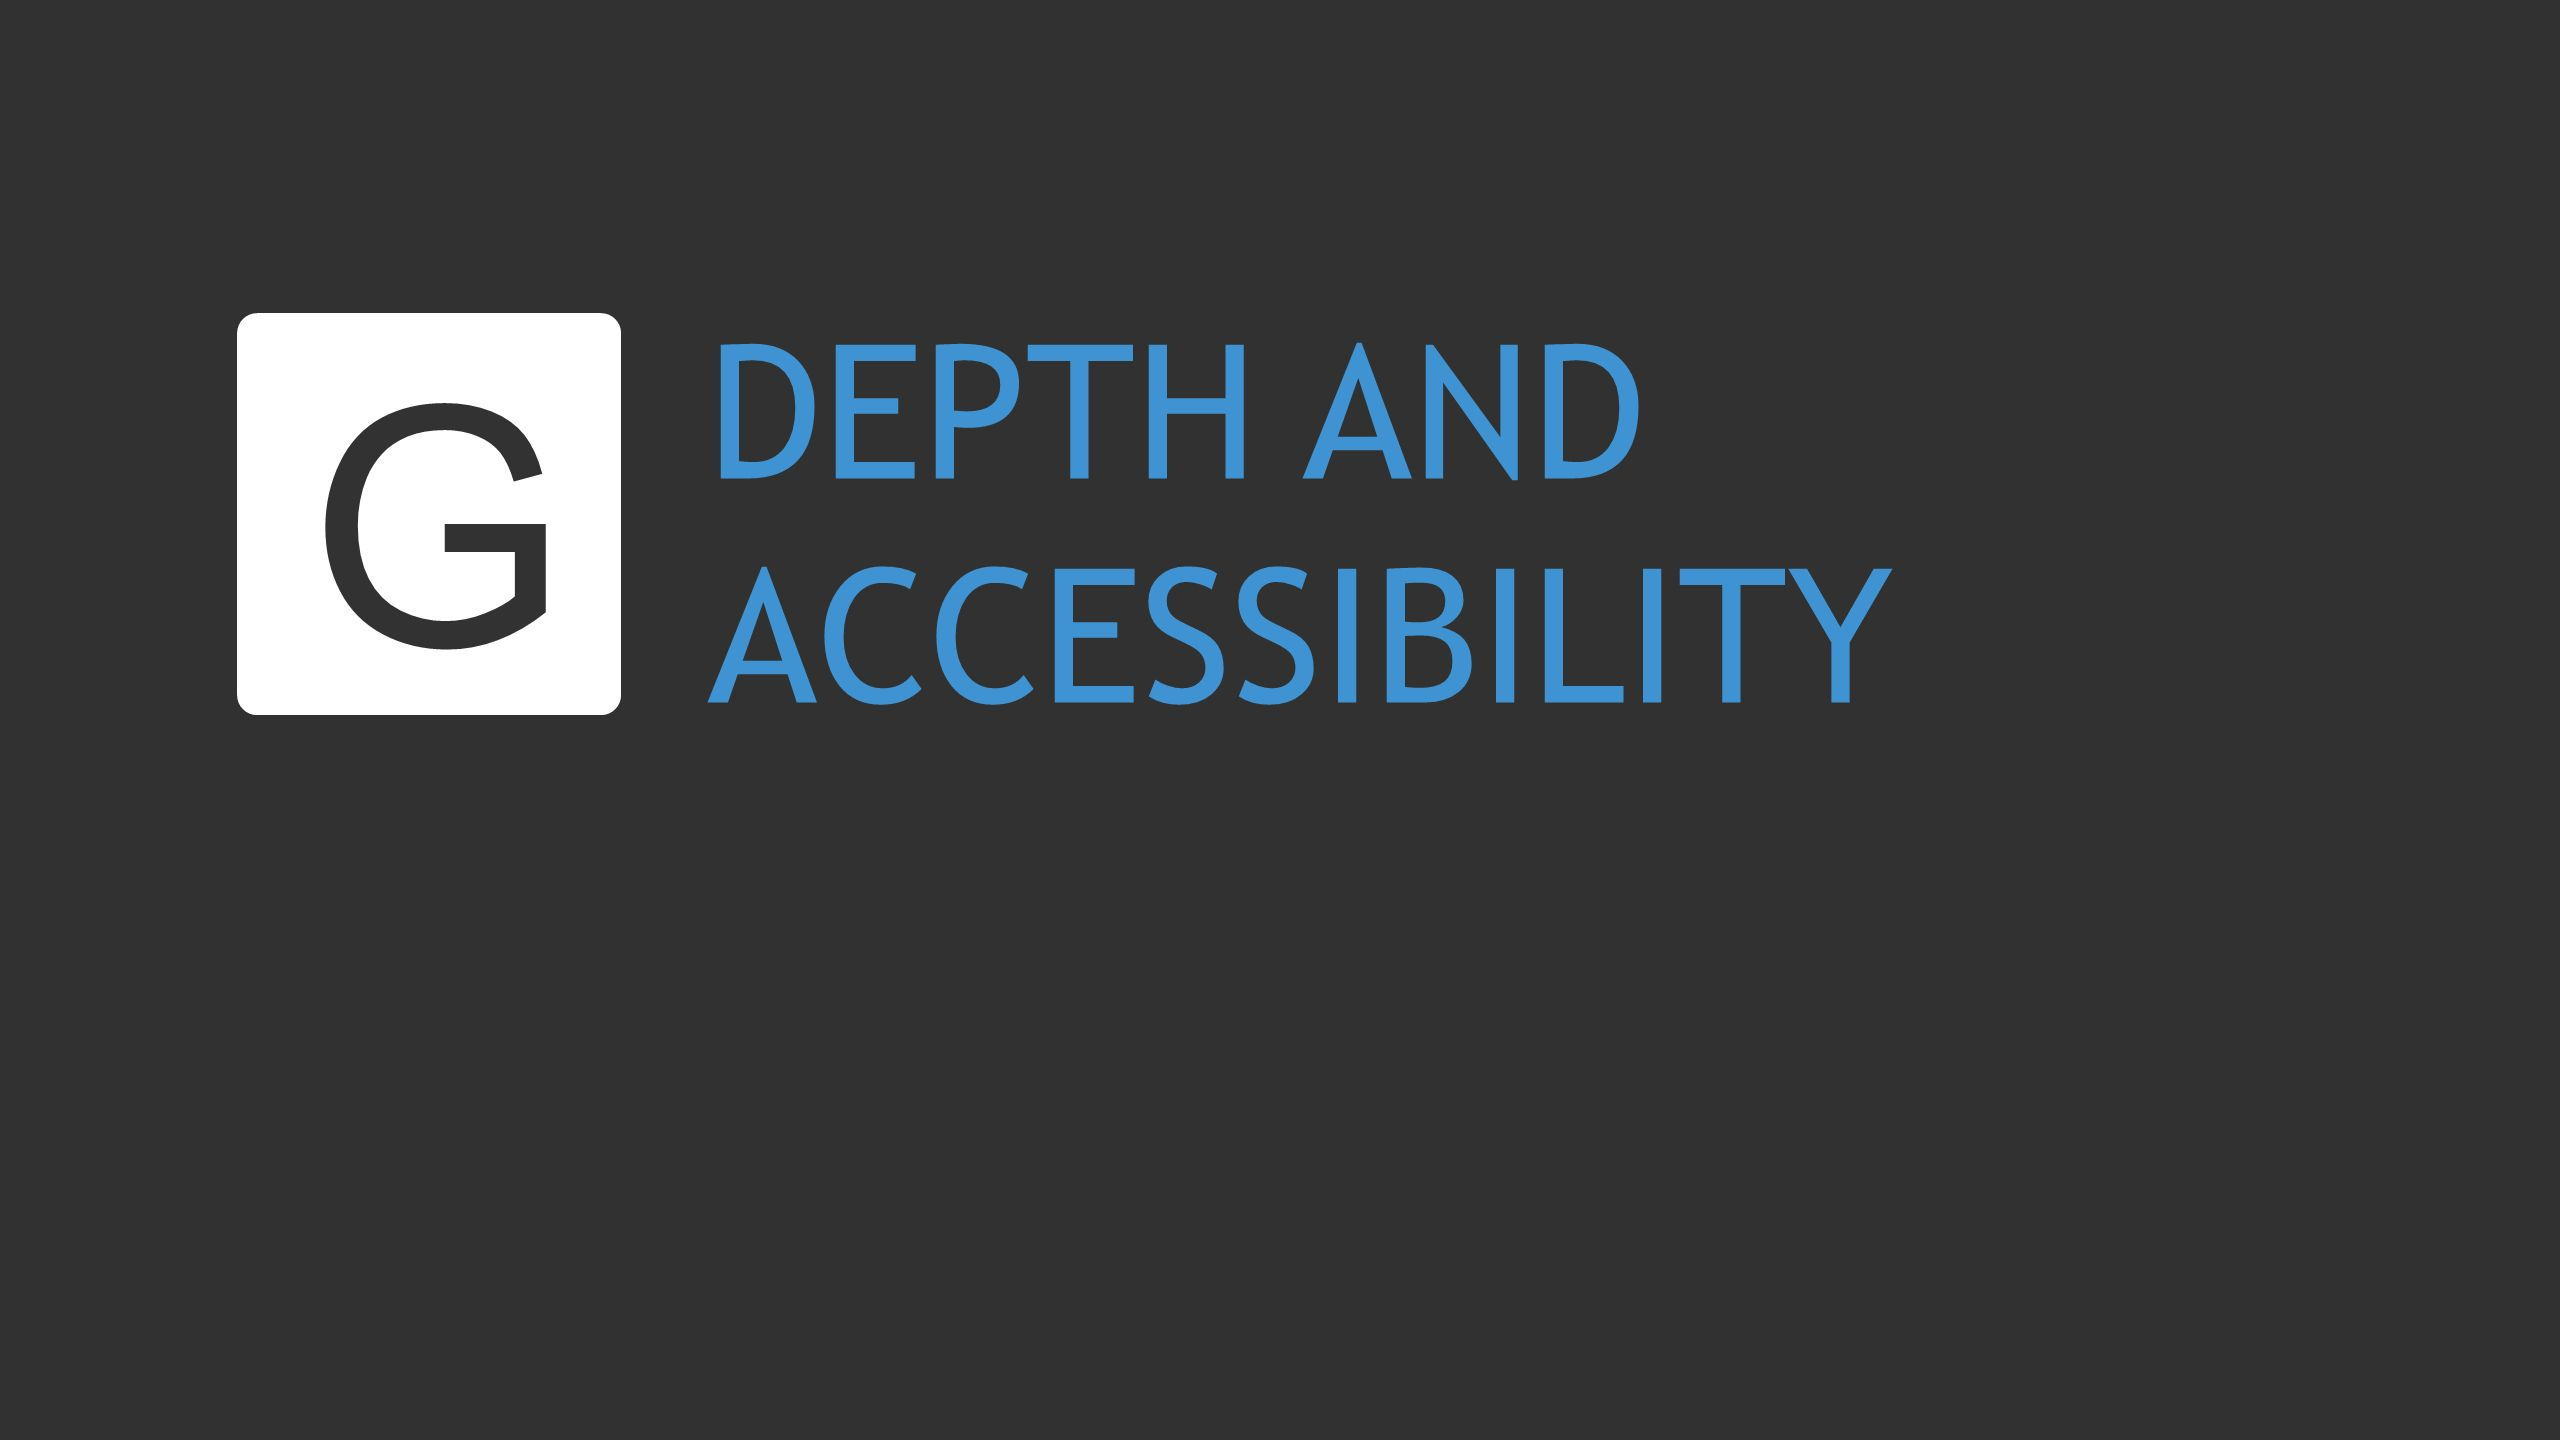 DEPTH AND ACCESSIBILITY G